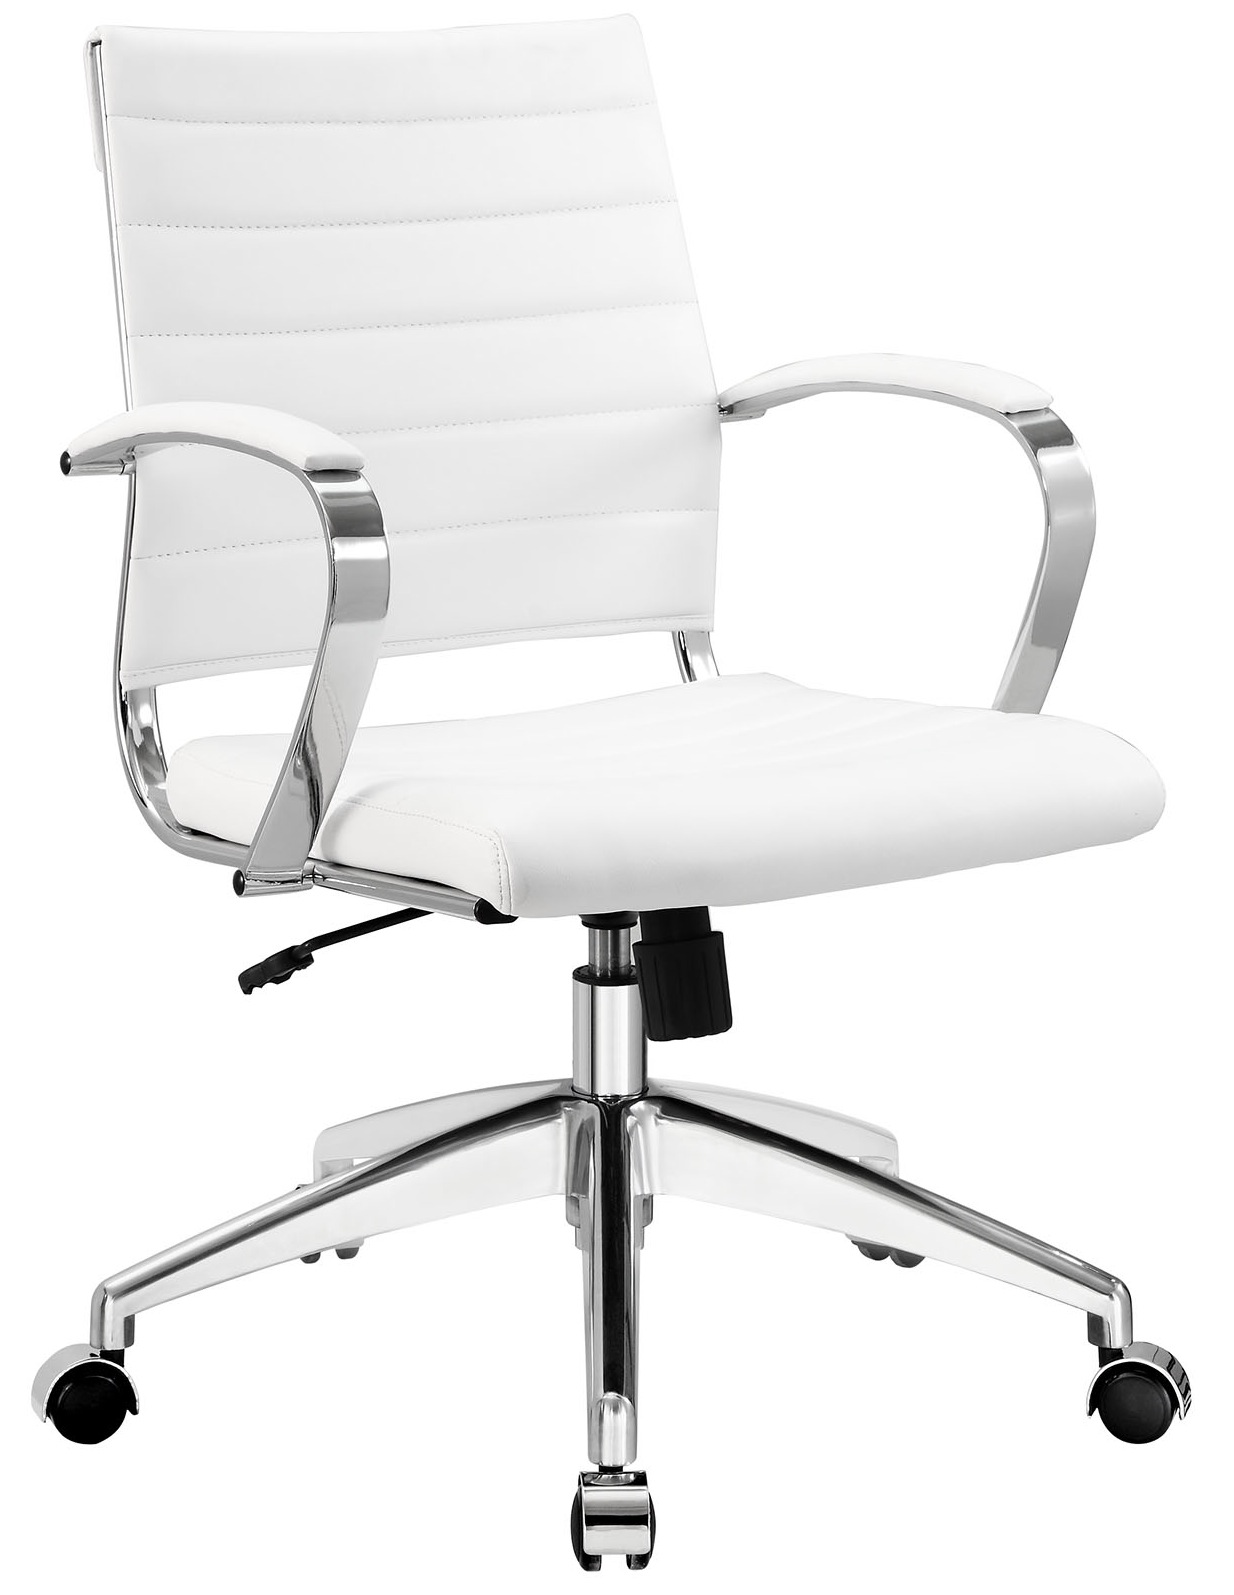 aria-office-chair-white.jpg